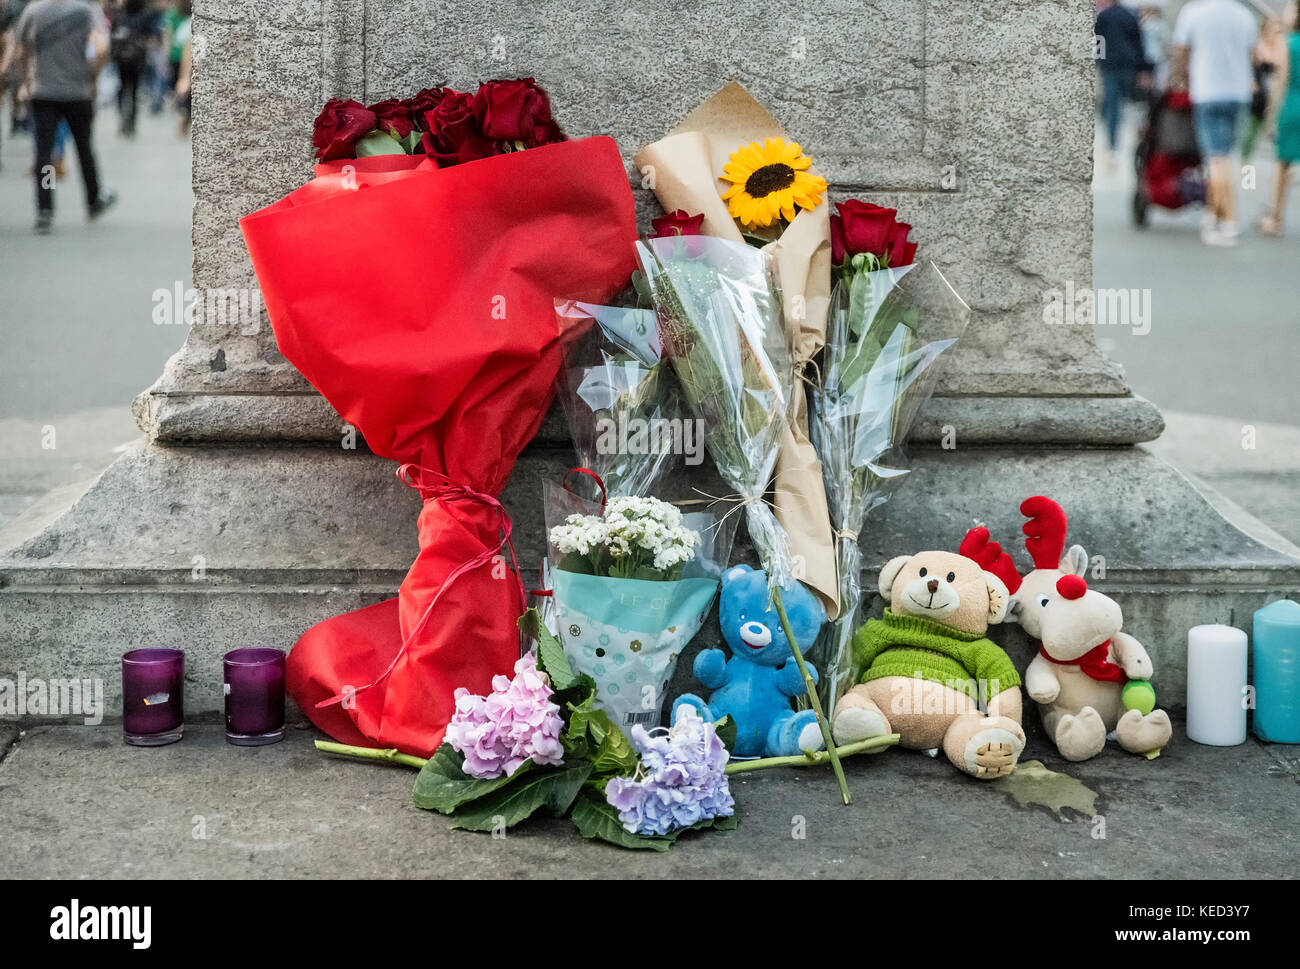 Memorial tribute flowers and candles placed at Las Ramblas district, site of a 2017 terror attack that killed 13 - Stock Image